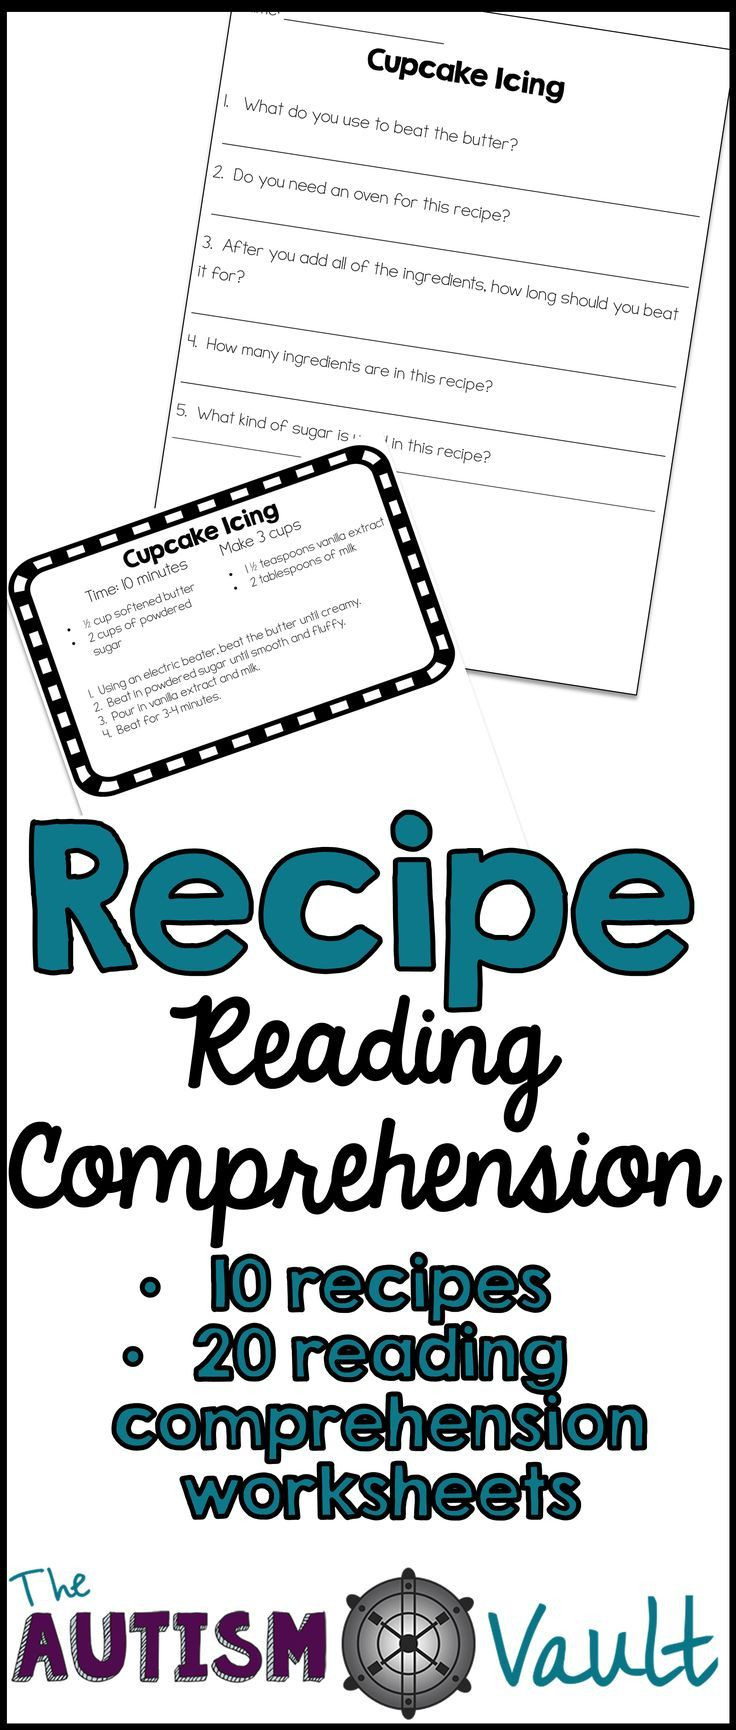 Autism Reading Comprehension Worksheets Recipe Reading Prehension Functional Literacy